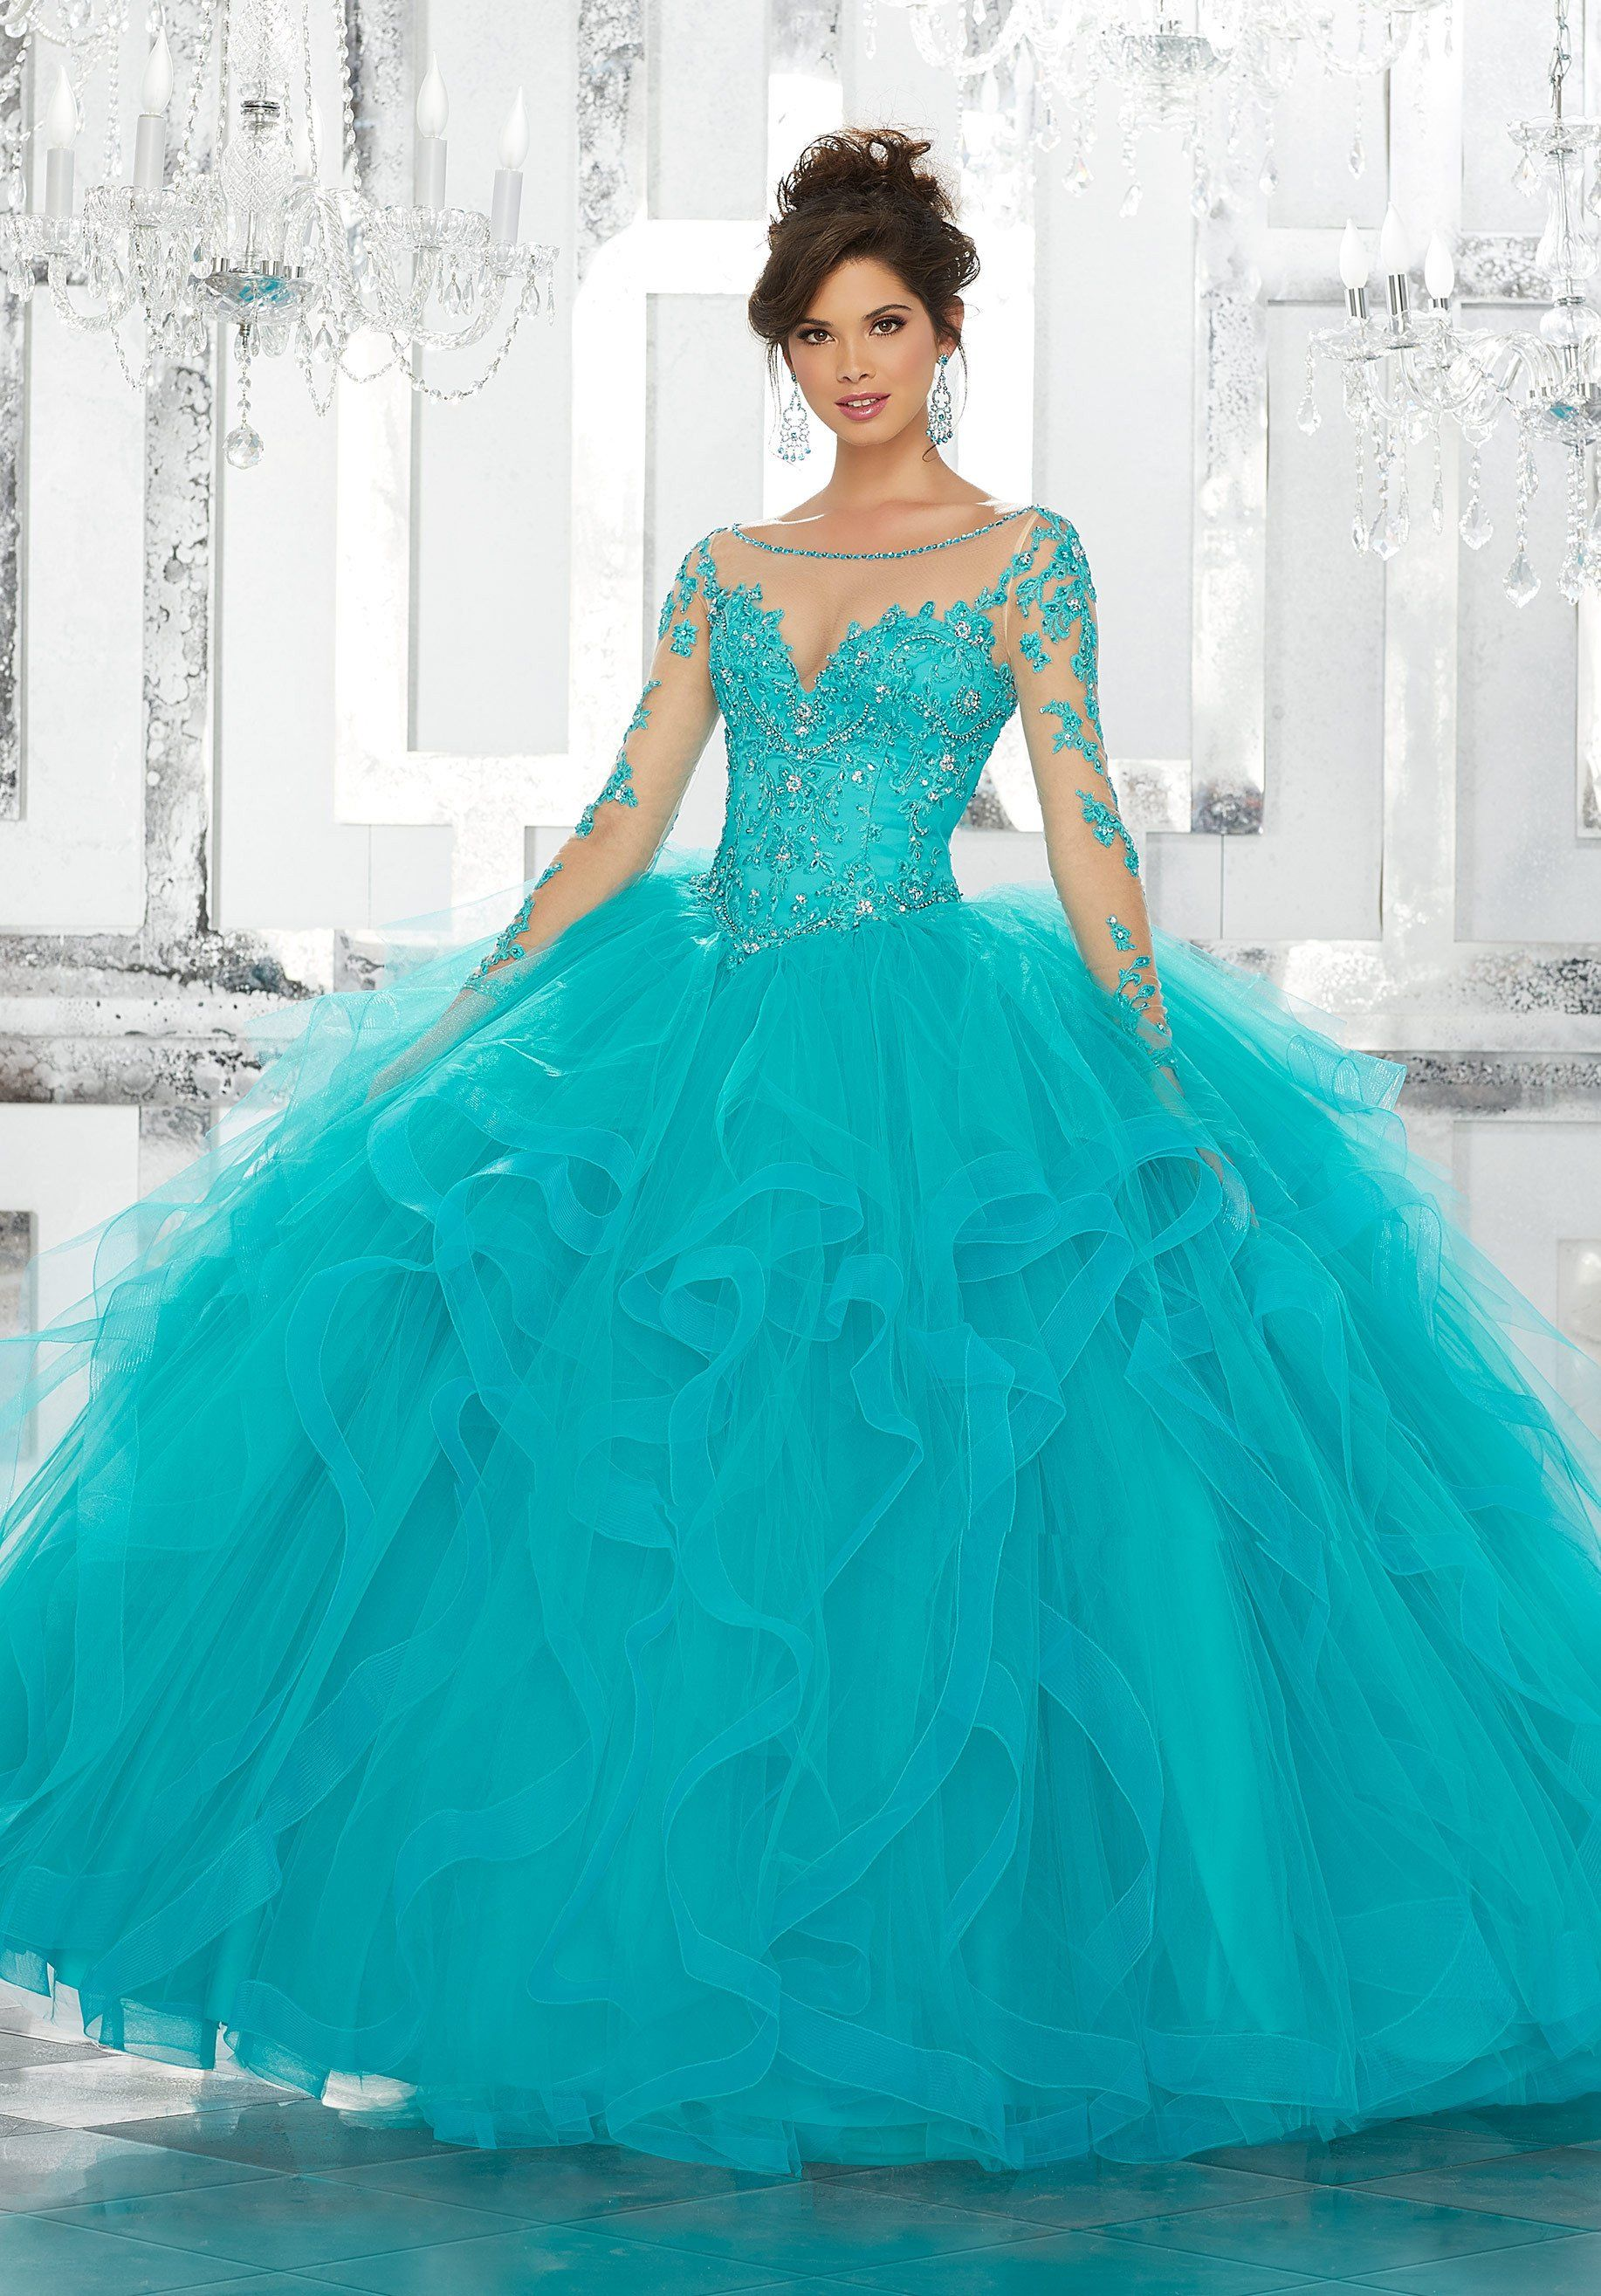 044e11e9a1d Long Sleeved Quinceanera Dress by Mori Lee Vizcaya 89142 in 2019 ...